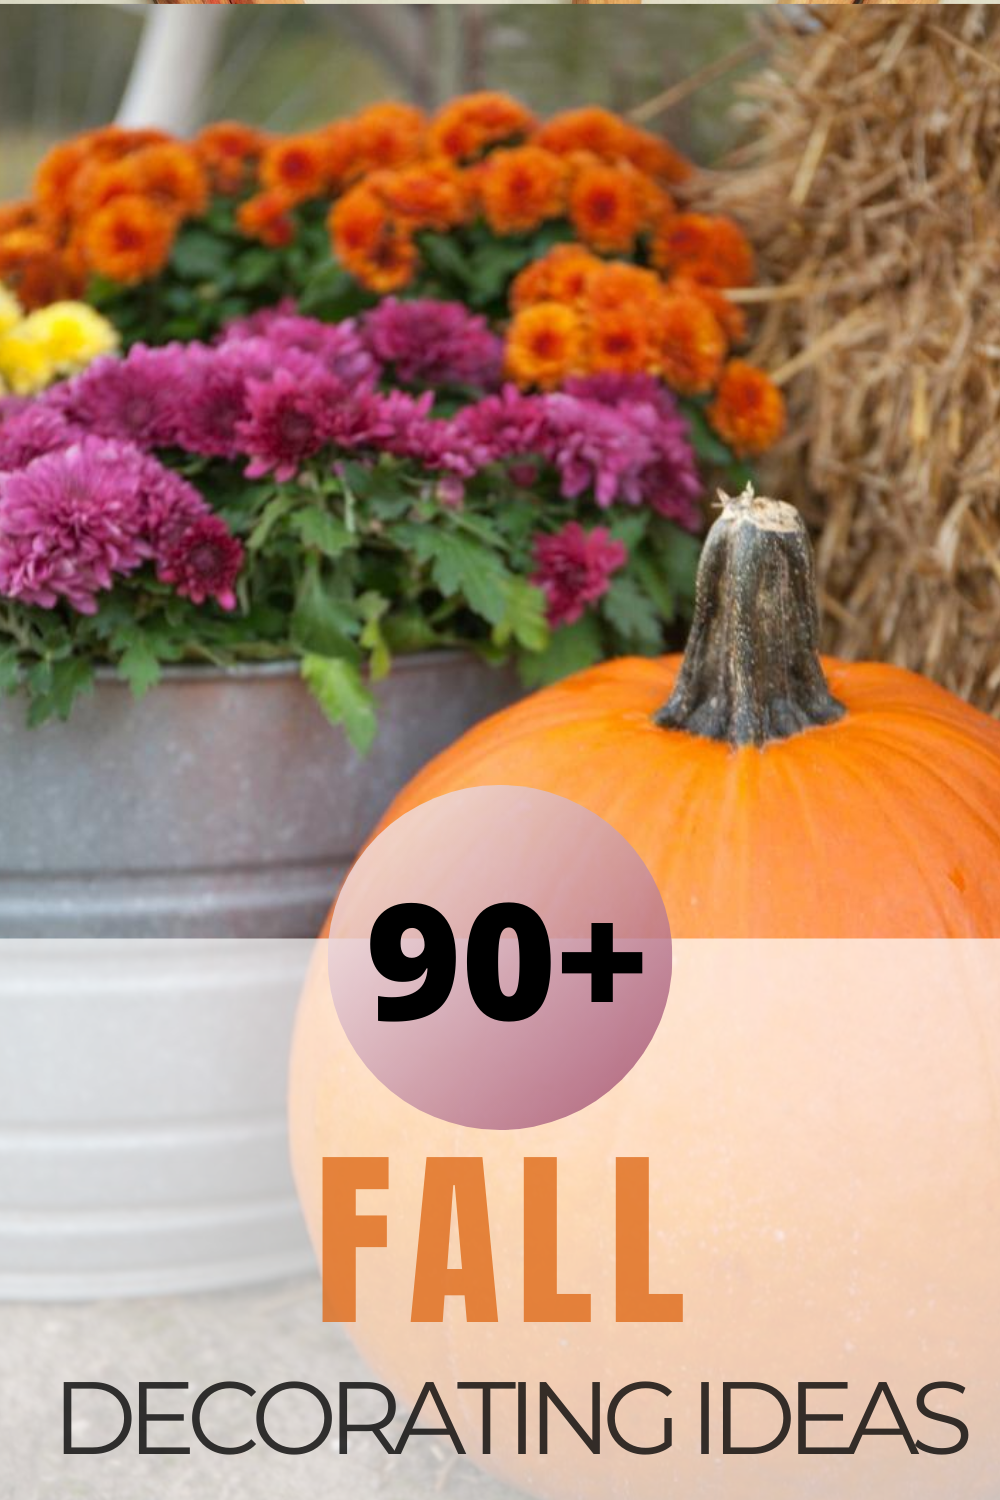 Thinking about decorating your home for fall? Check out 90+ fall decorating ideas shared by a group of home decor bloggers. You are sure to be inspired!  #fallideas #falldecorating #fallhomedecor via @spaula